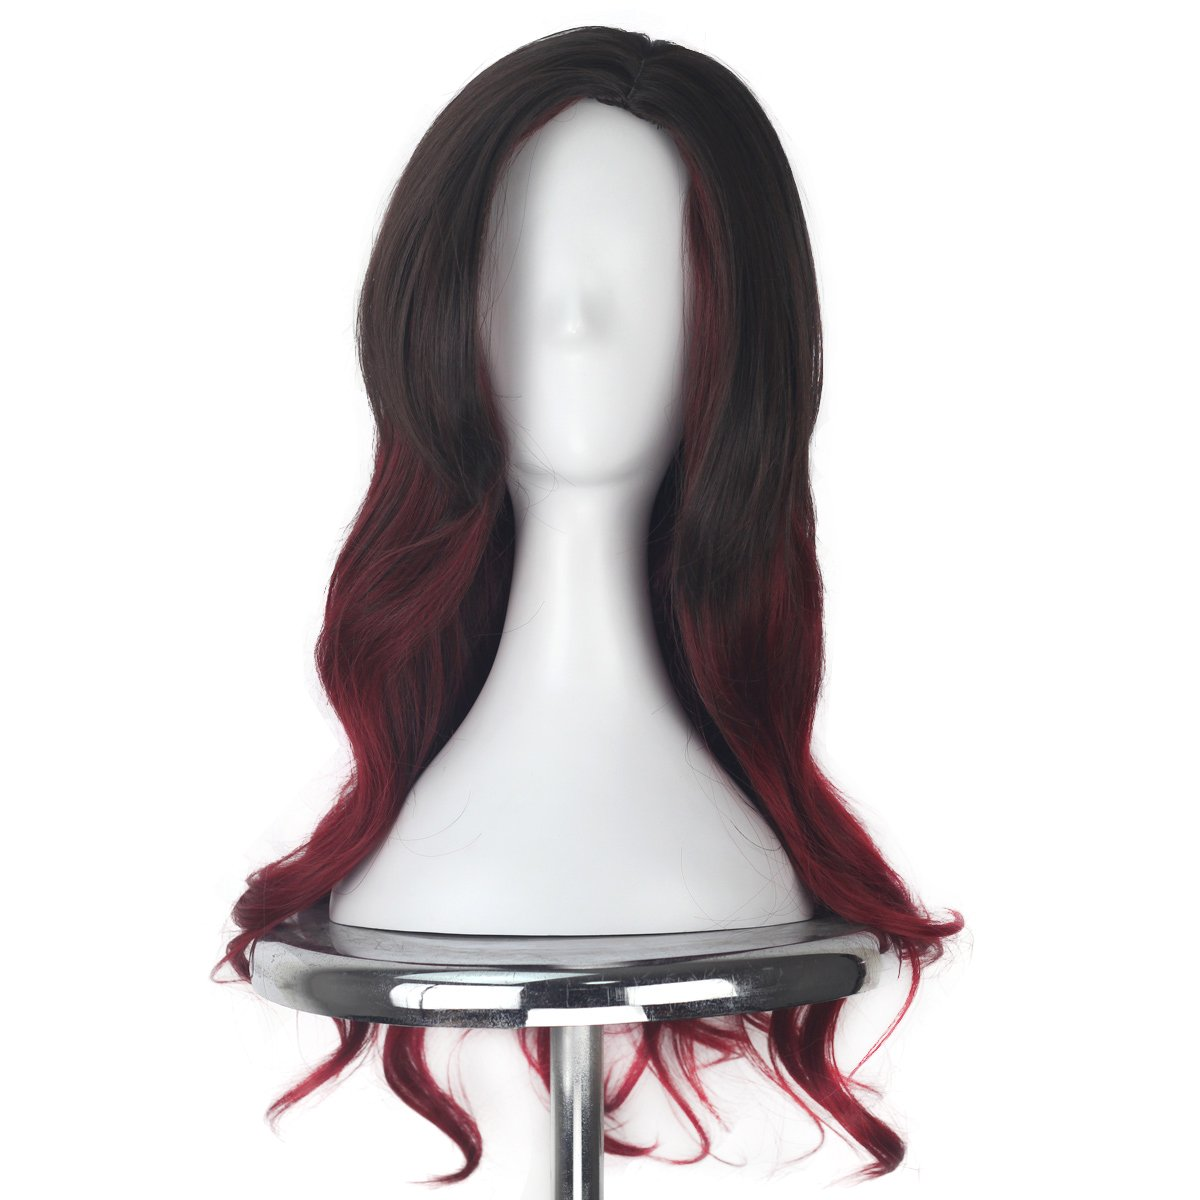 Women Long Wavy Ombre Brown Dark Red Color Side Part Scalp Cosplay Costume Halloween Wig